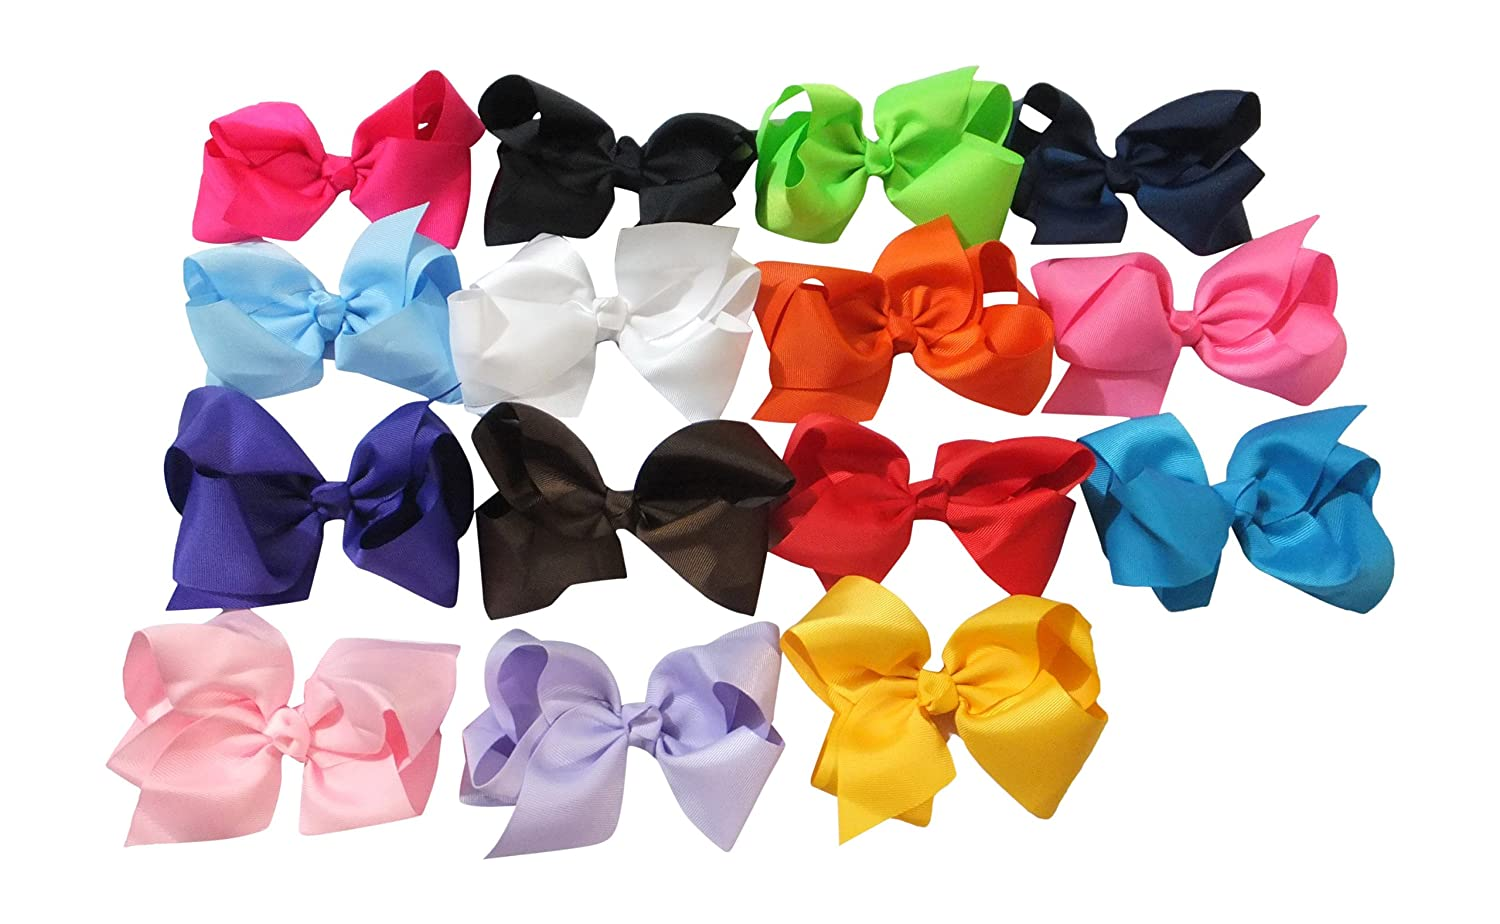 Amazon – HIGHLY Rated Large Boutique 5.5in Hair Bows for Teens Women Girls  Baby Gifts 15pcs just  10.99 (reg  29.99 !)! f3e577b6a41